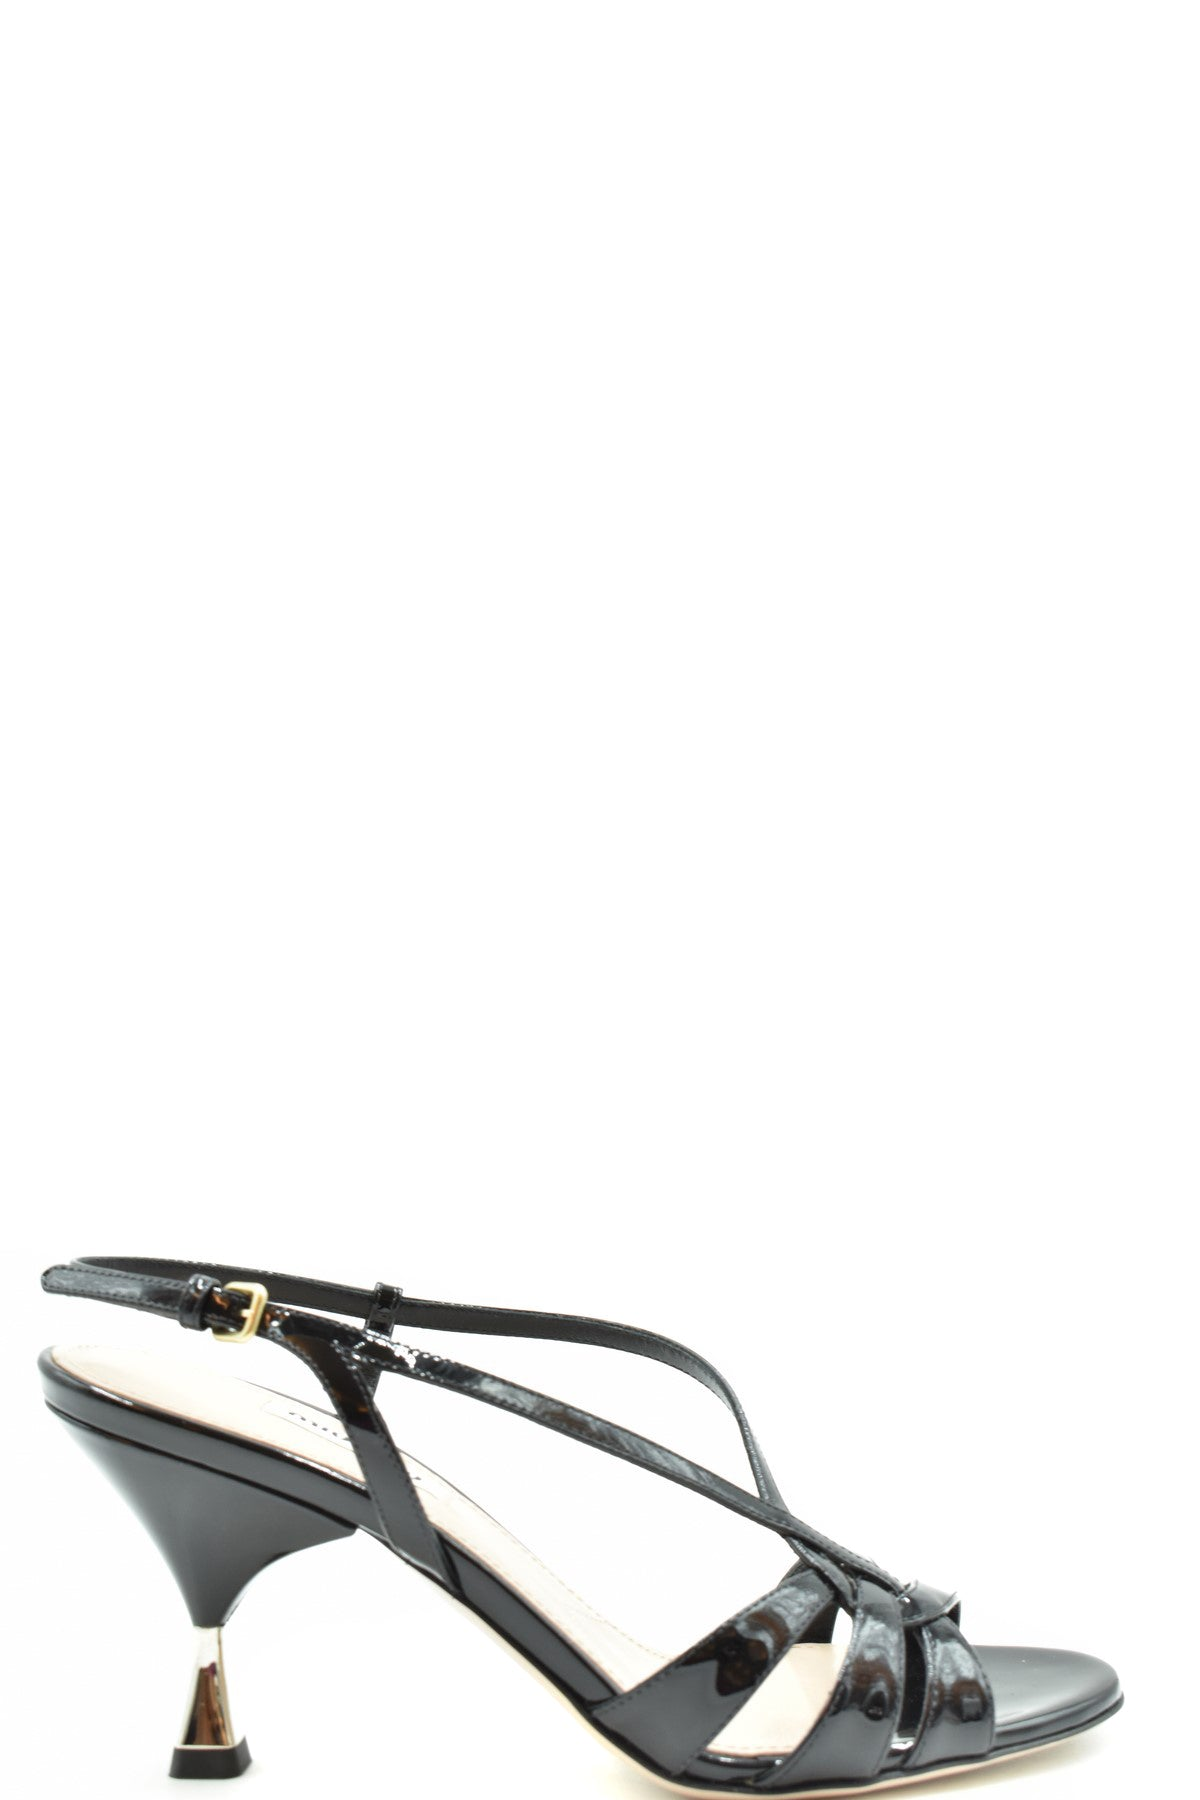 Shoes Miu Miu-Women's Fashion - Women's Shoes - Women's Sandals-36-Product Details Terms: New With LabelMain Color: BlackType Of Accessory: ShoesSeason: Spring / SummerMade In: ItalyGender: WomanHeel'S Height: 8 CmSize: EuComposition: Dye 100%Year: 2020Manufacturer Part Number: 5X154D 3Asn-Keyomi-Sook